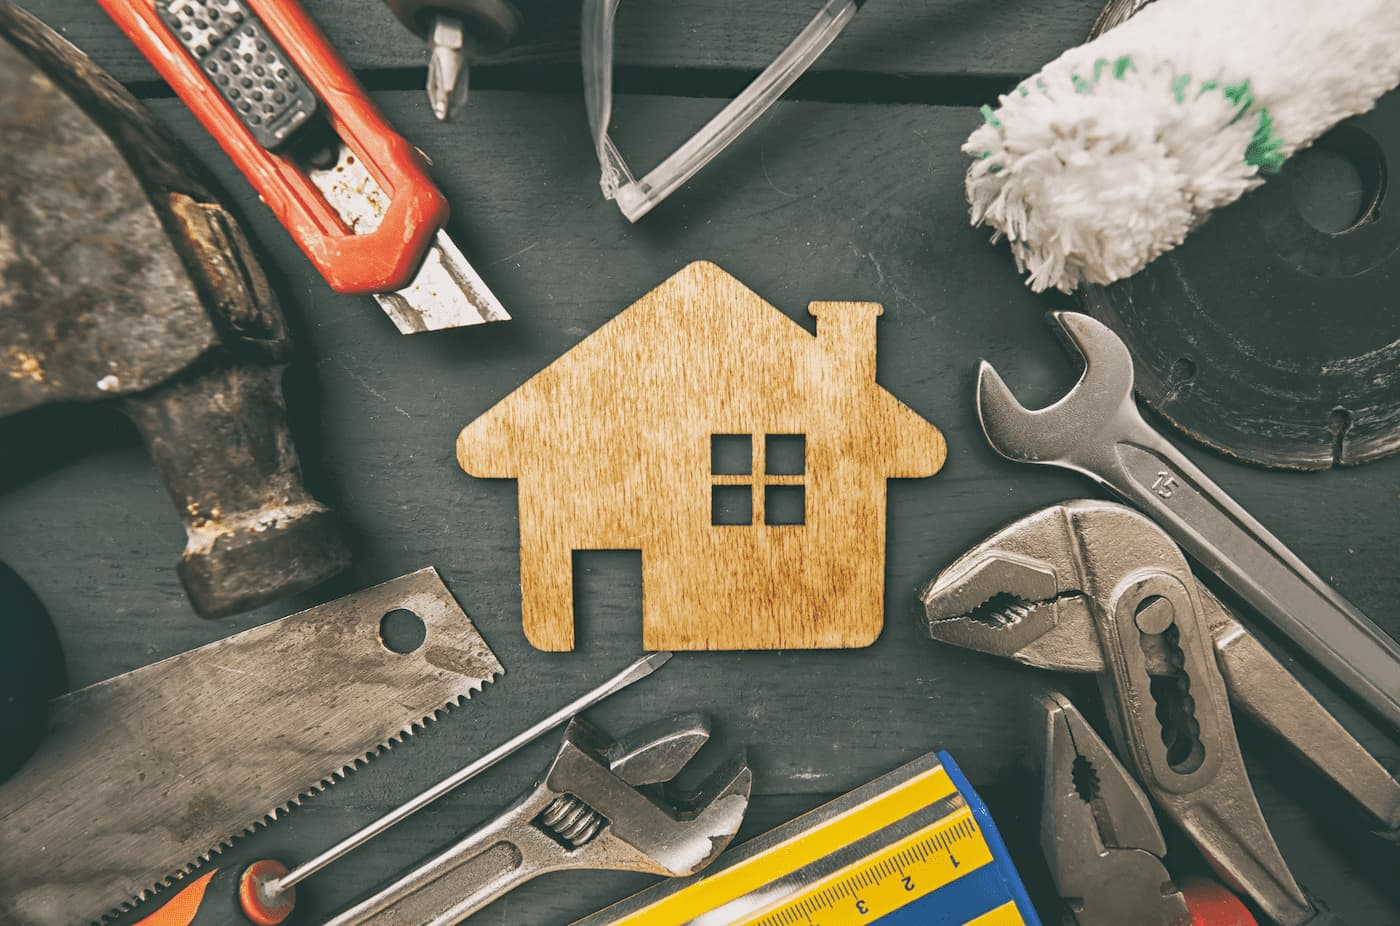 Home repair to prevent breaks at rental property